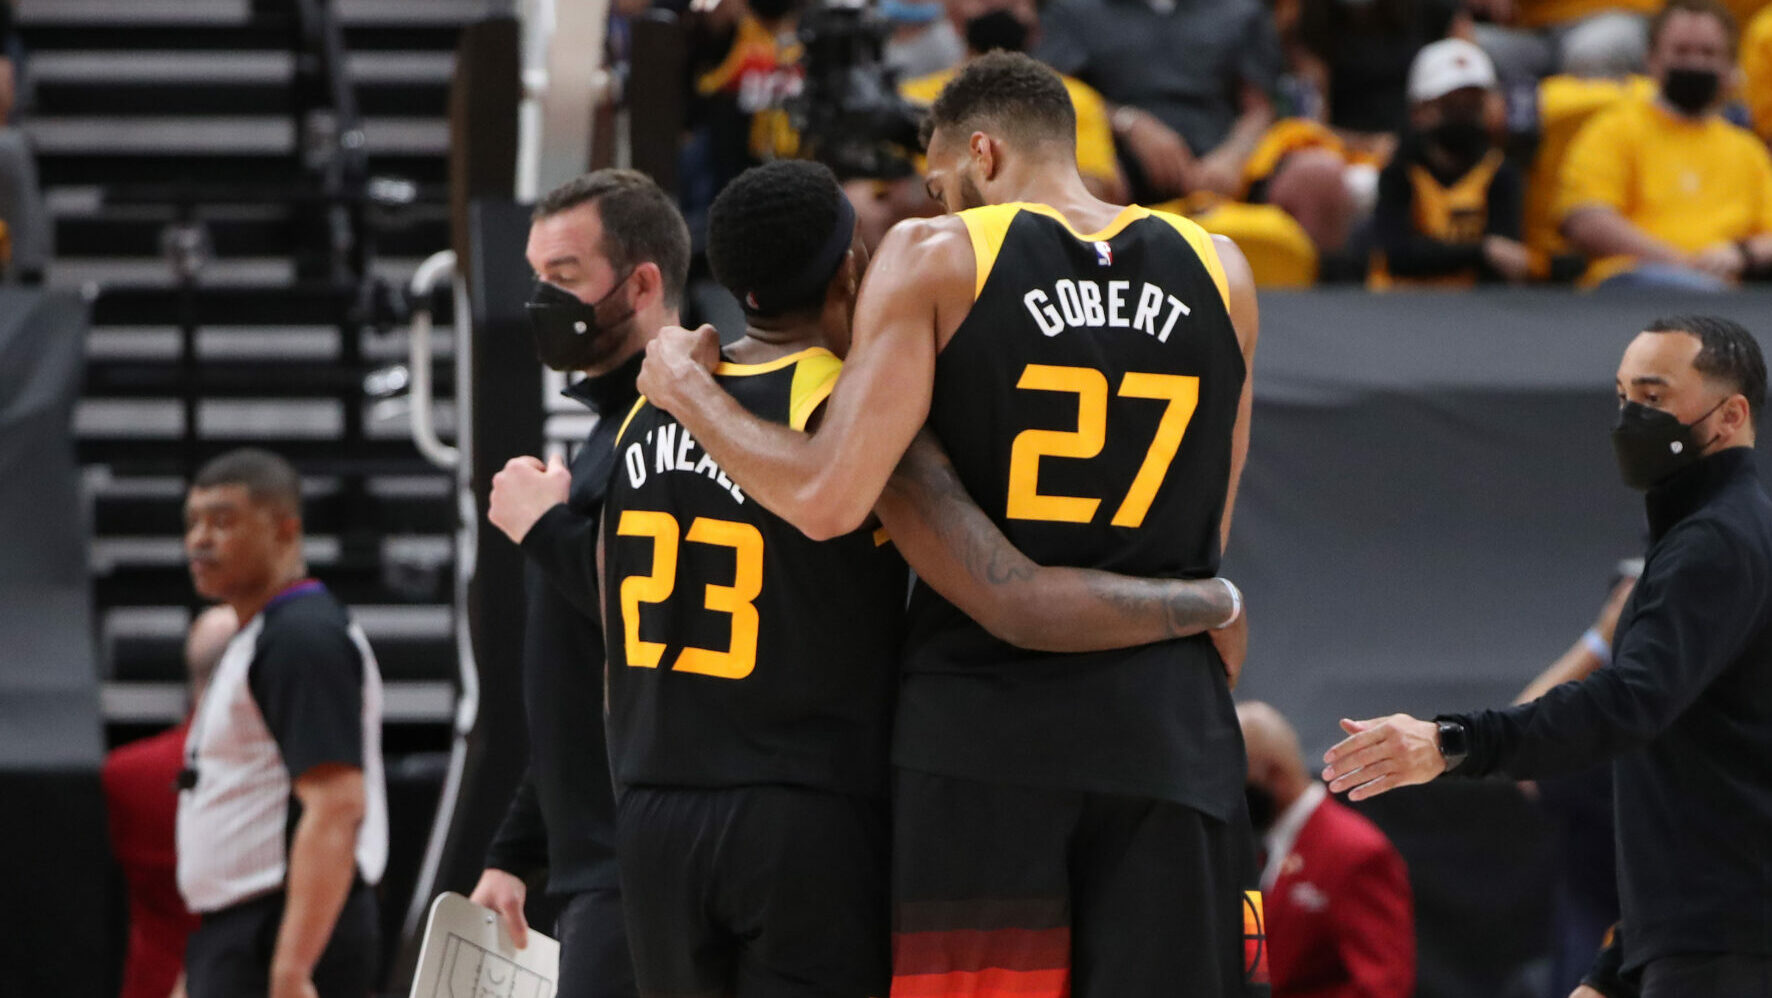 Jazz can take a breather after putting away Grizzlies